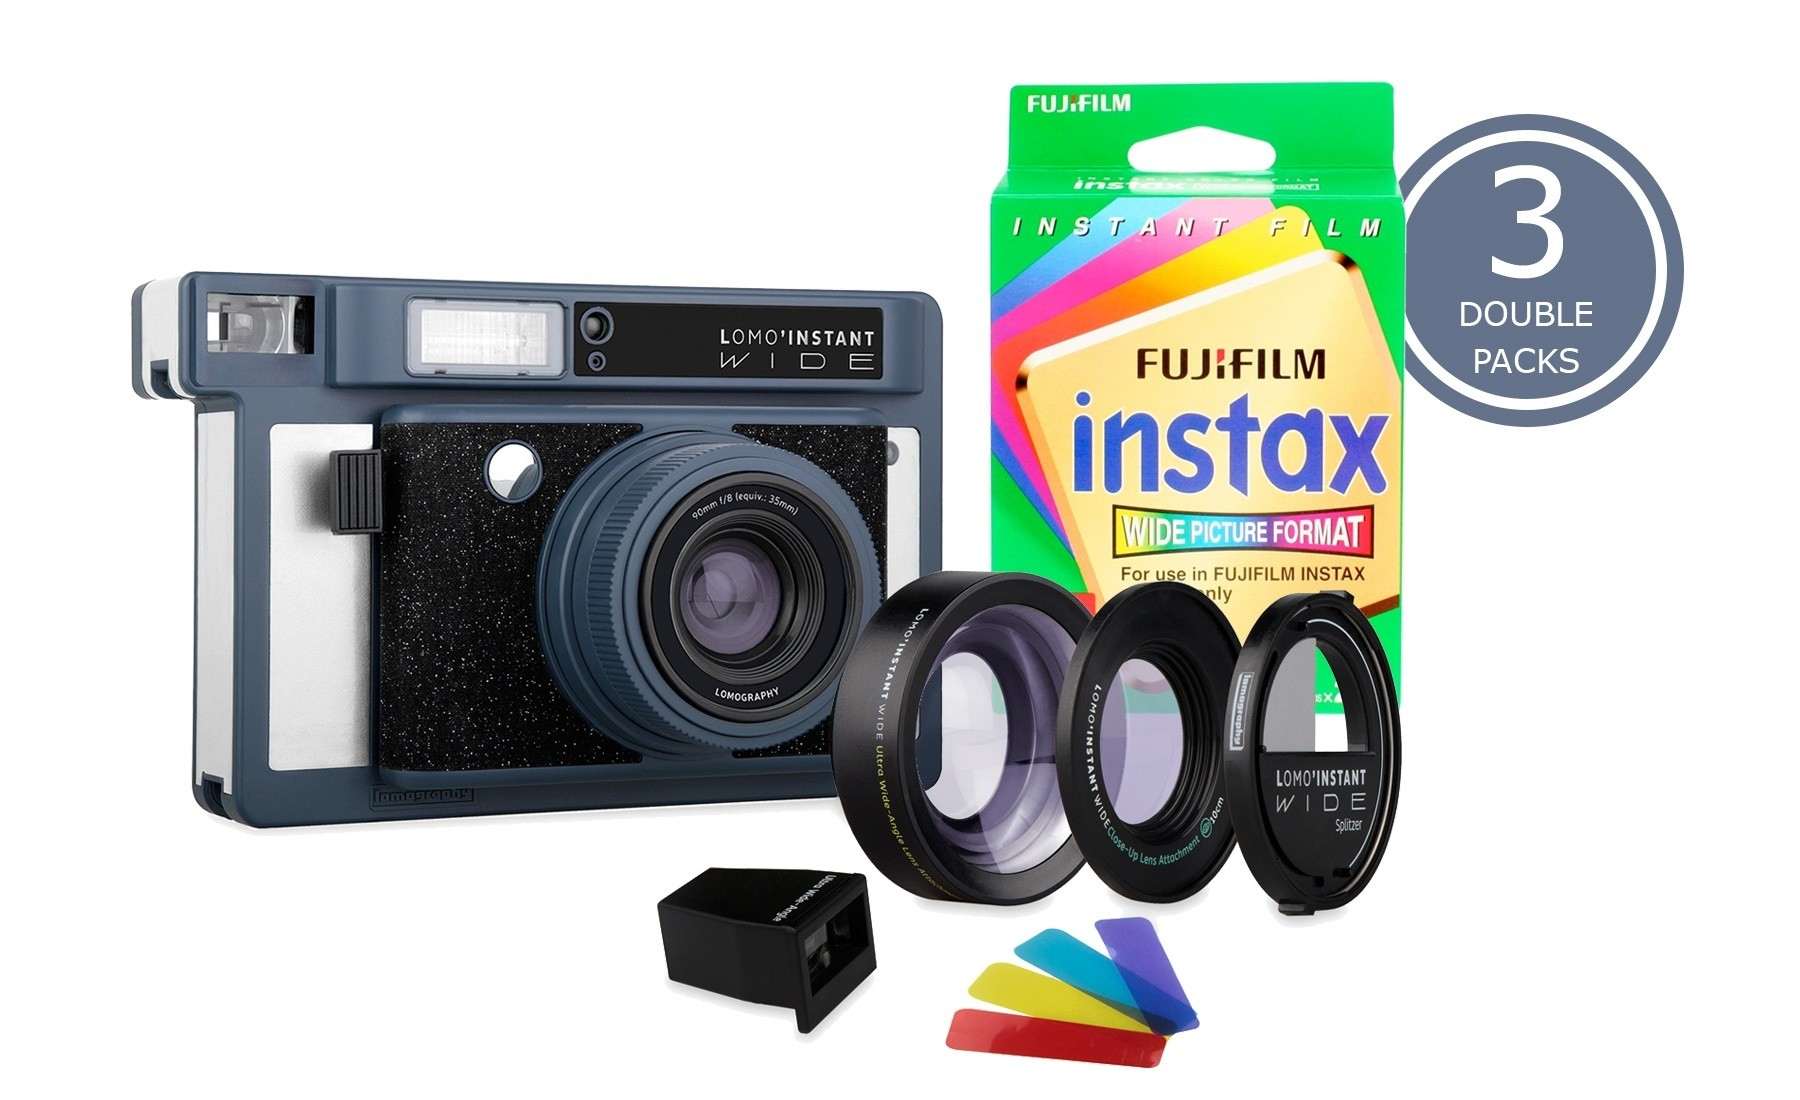 Lomoinstant Wide Lomography Shop